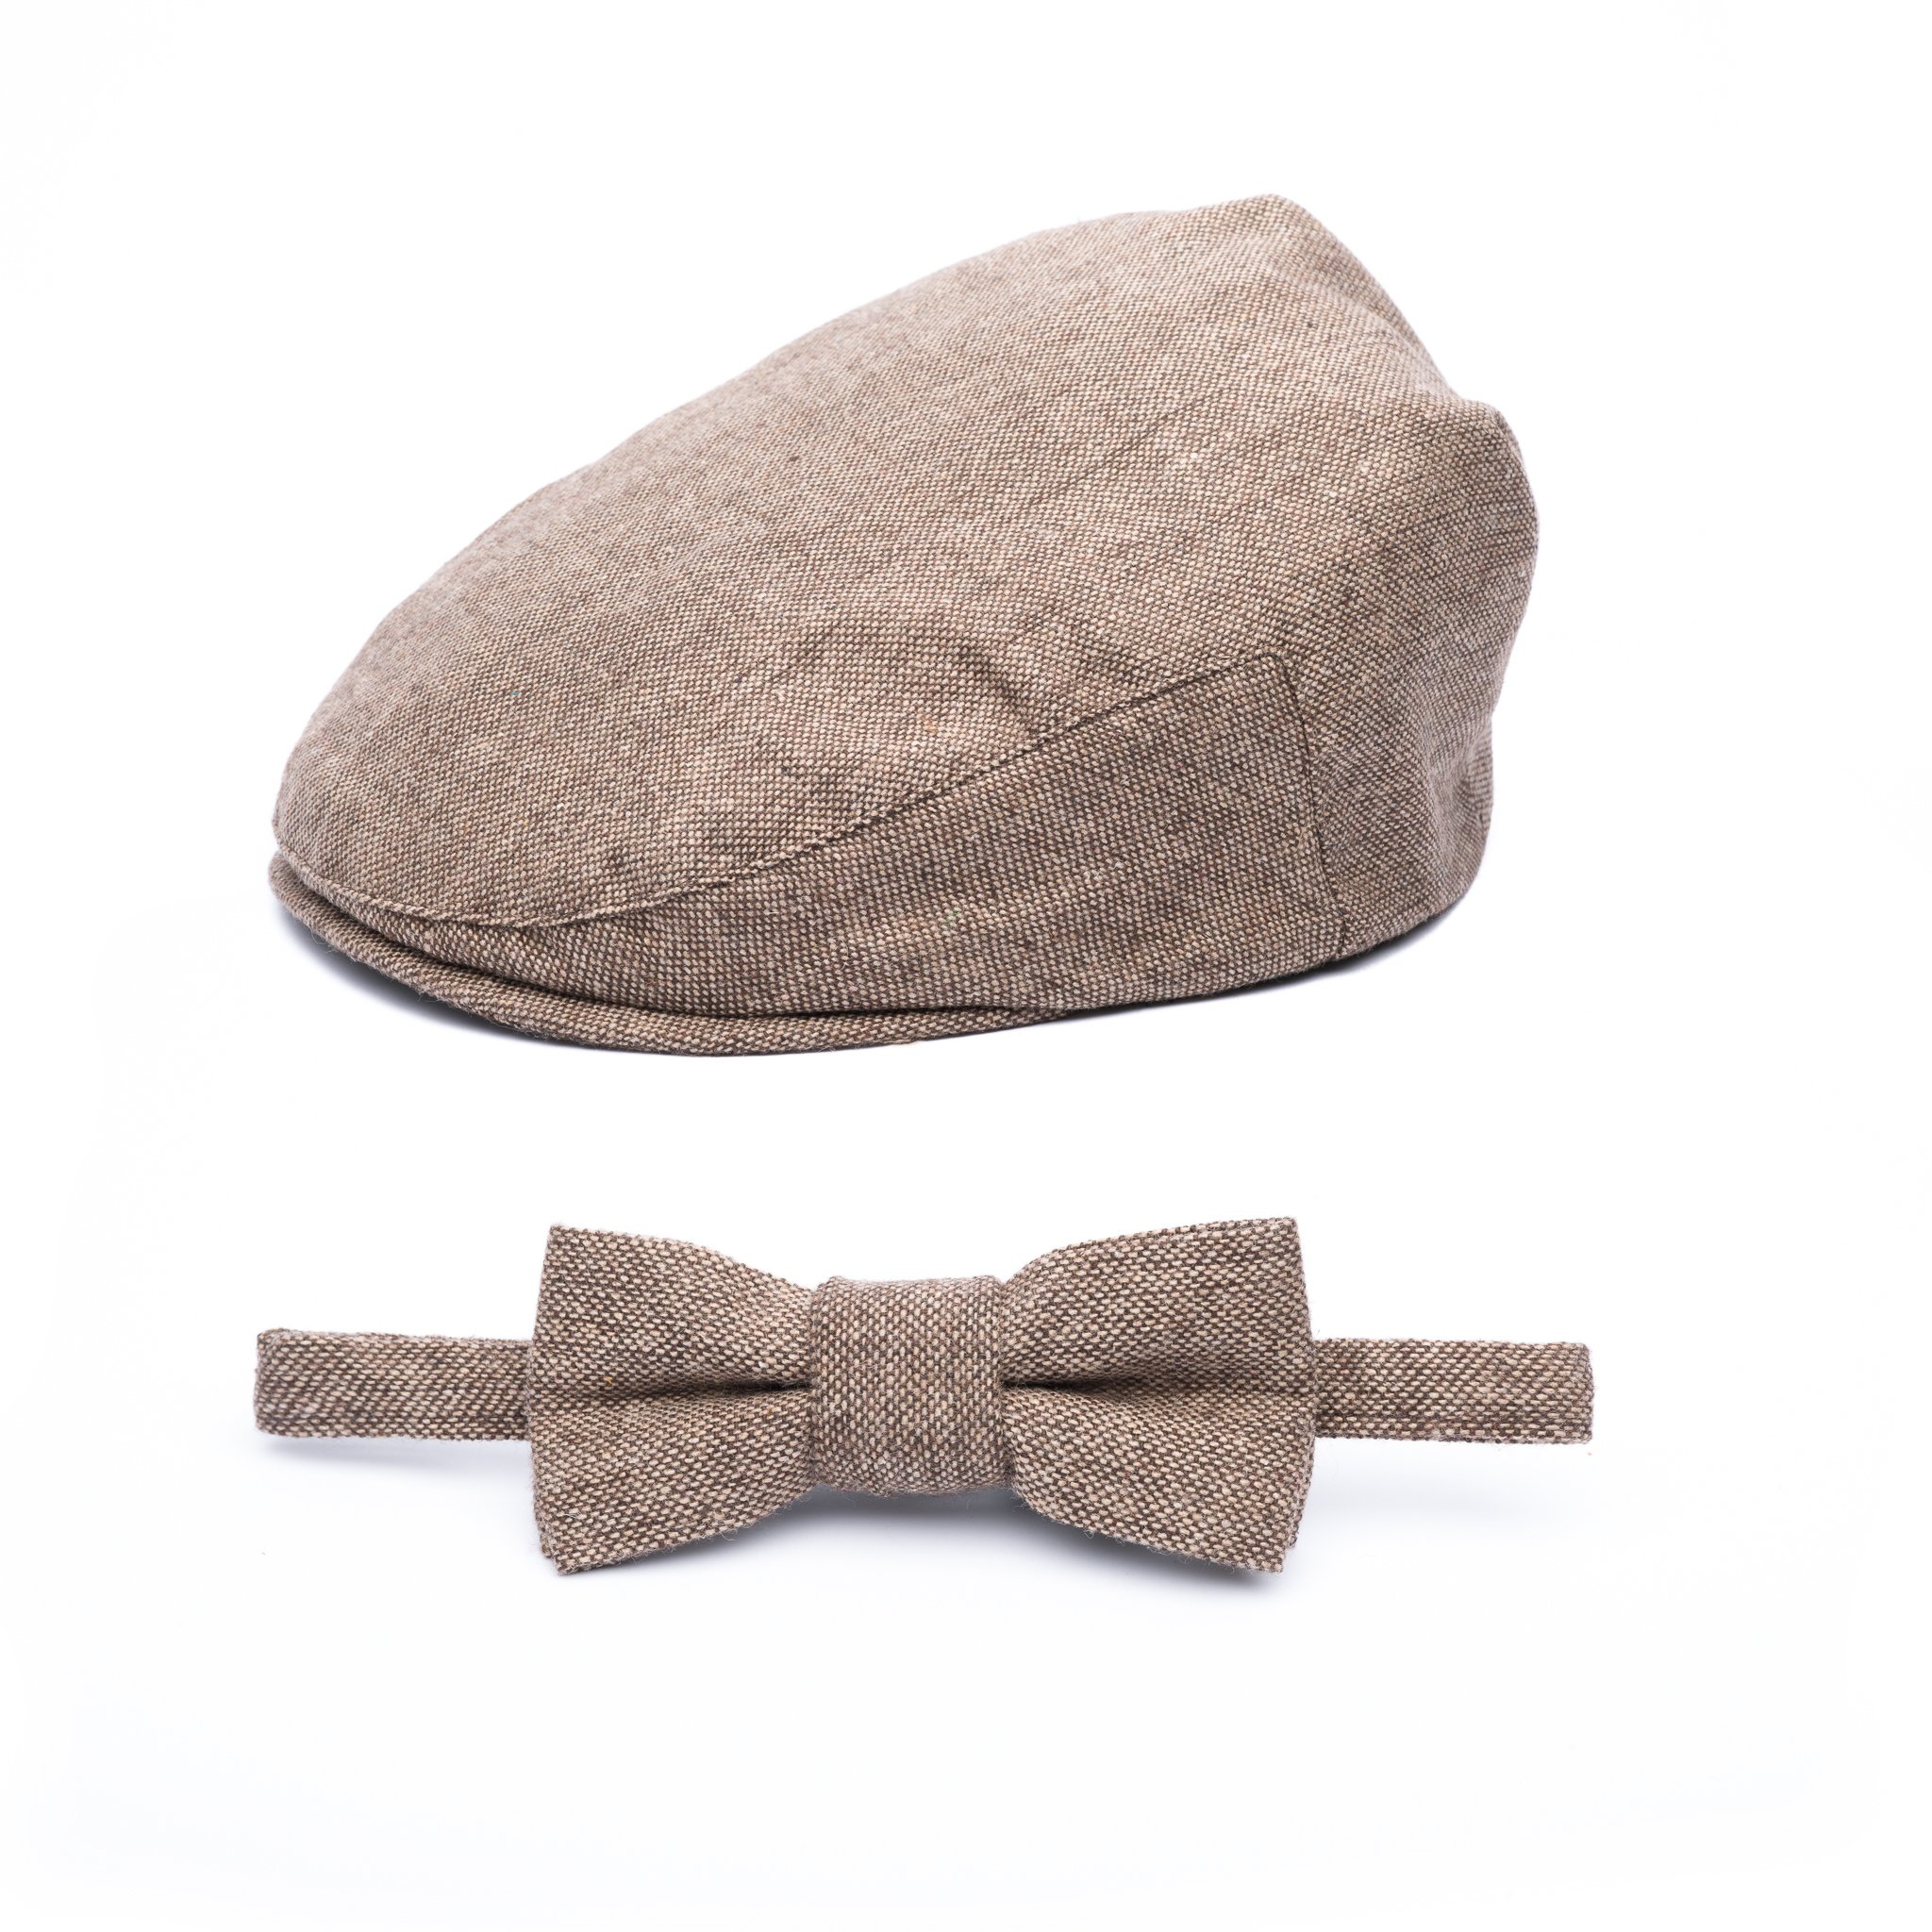 Born to Love - Baby Boy's Hat Vintage Driver Caps (XL 56cm (6-8 yrs), tan with Bow)